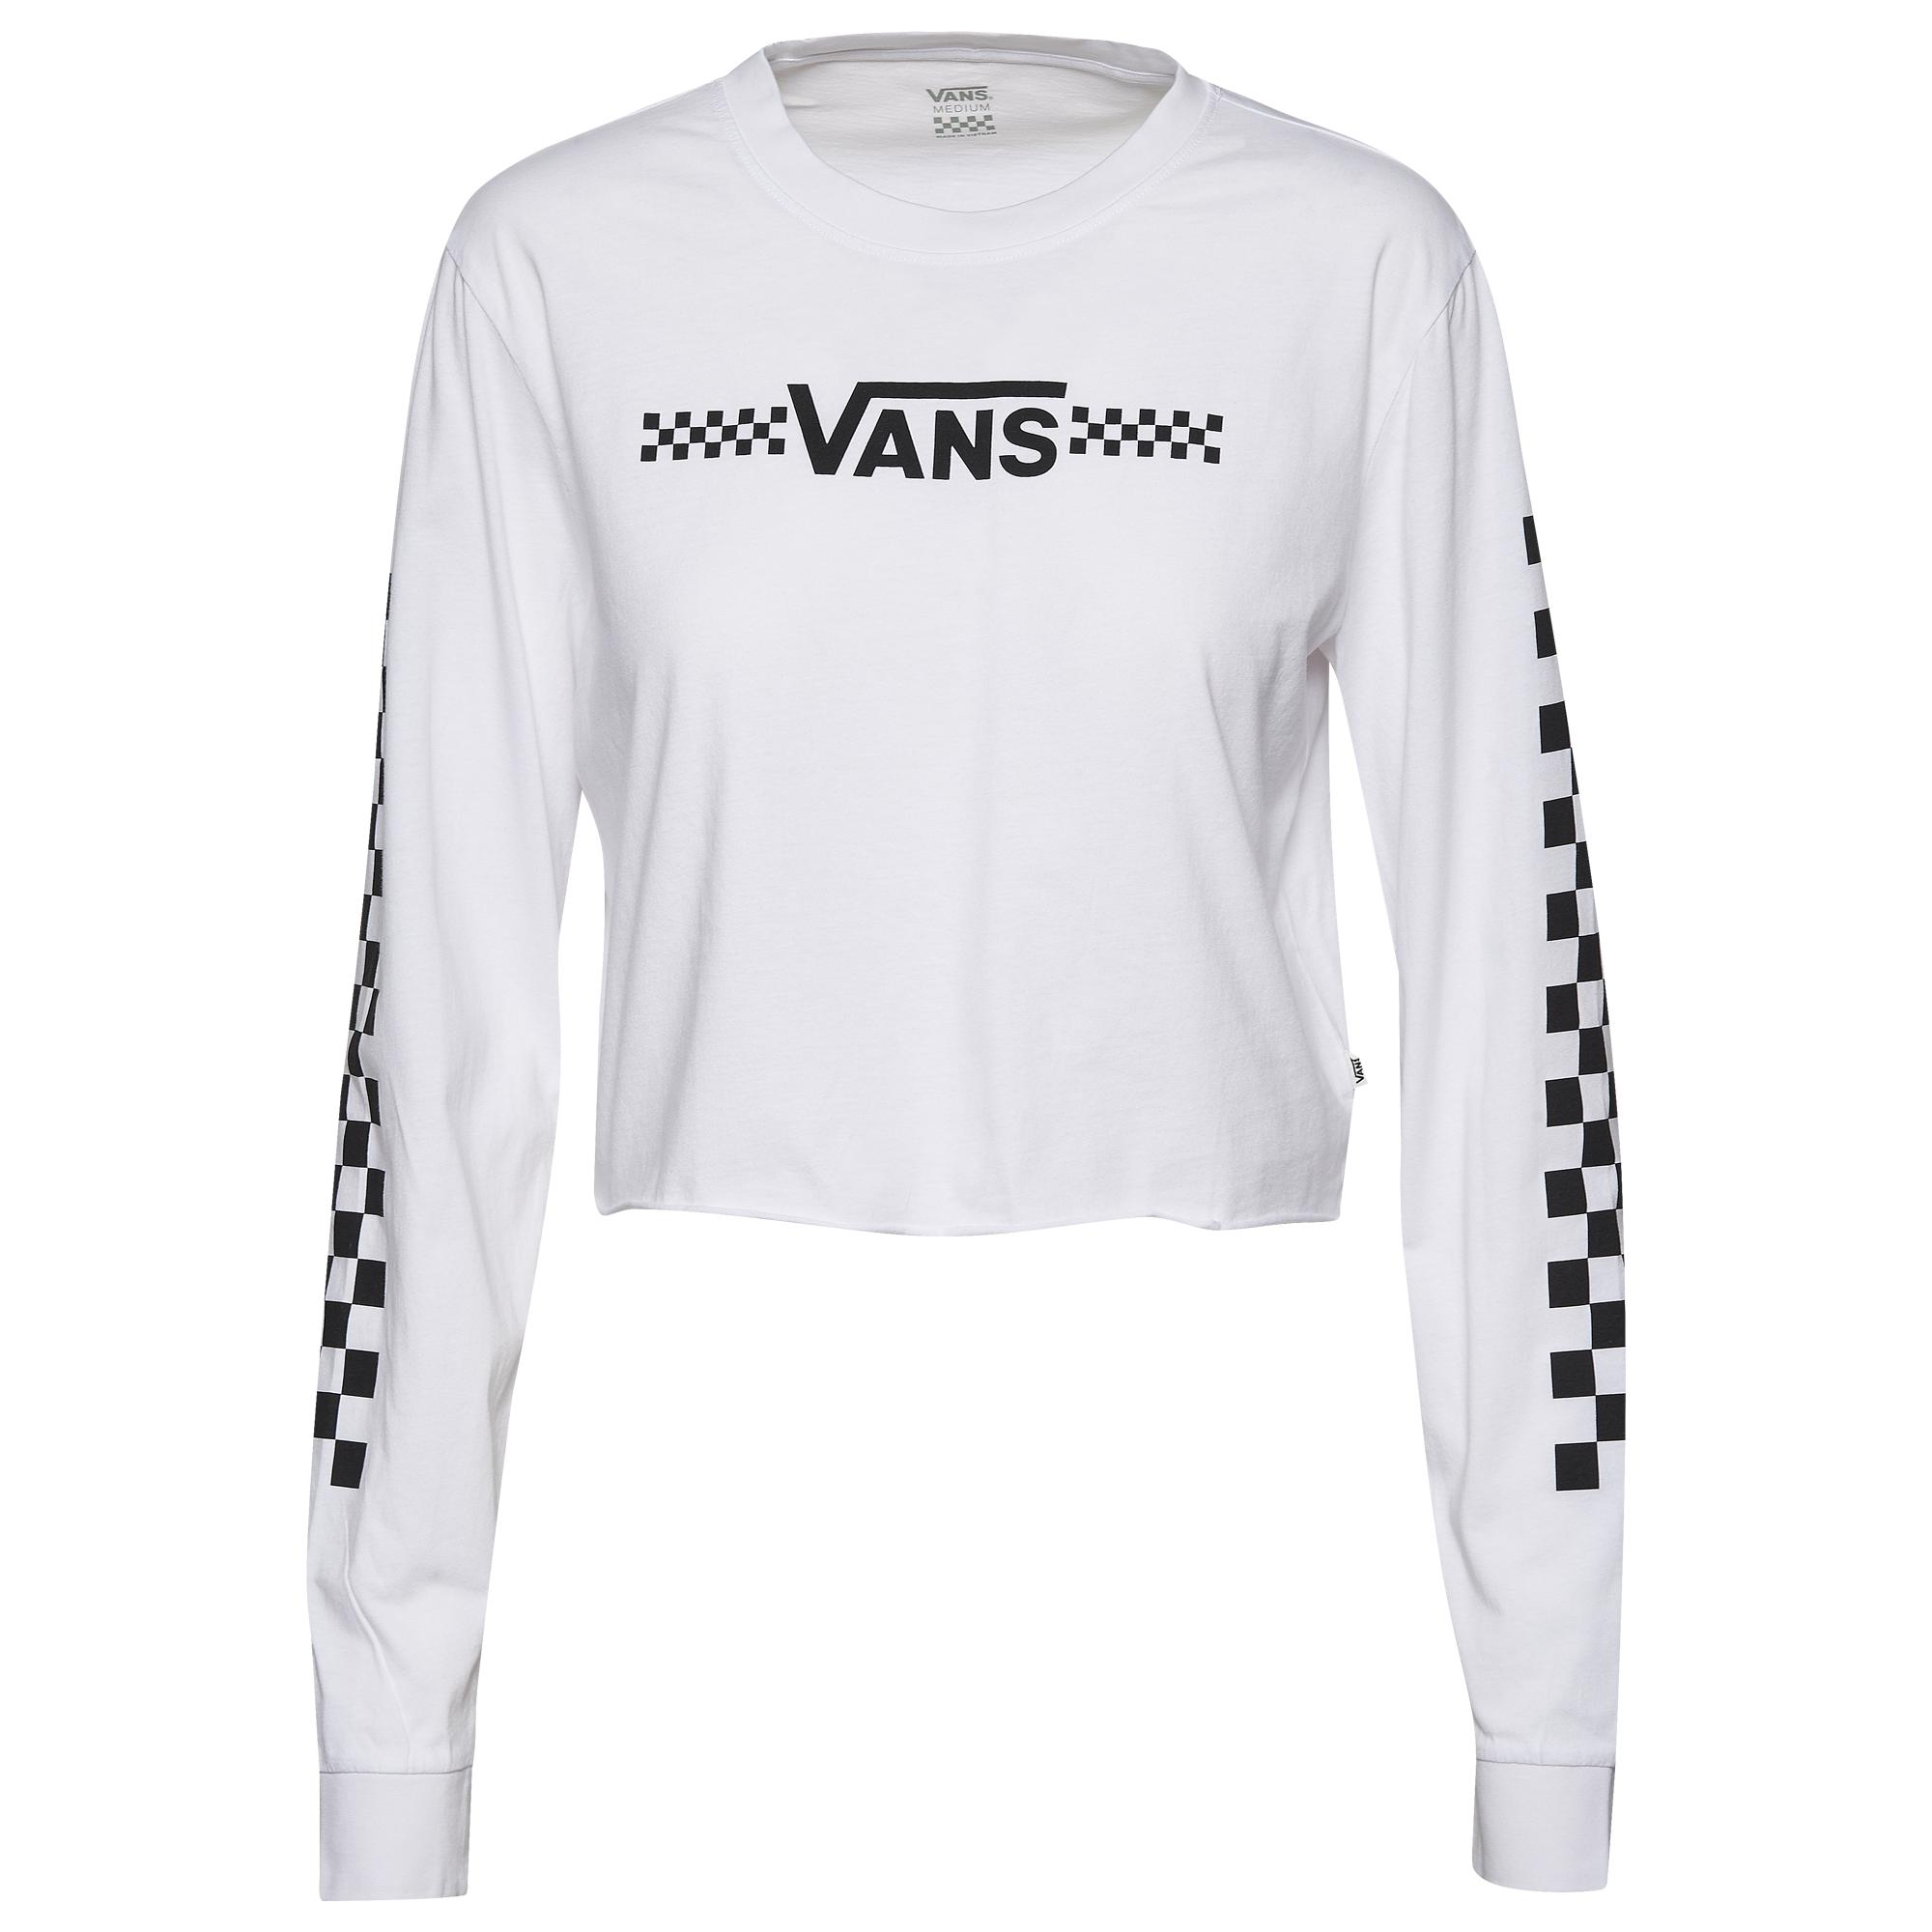 Vans Cotton Funnier Times Long Sleeve Crop Top in White - Lyst